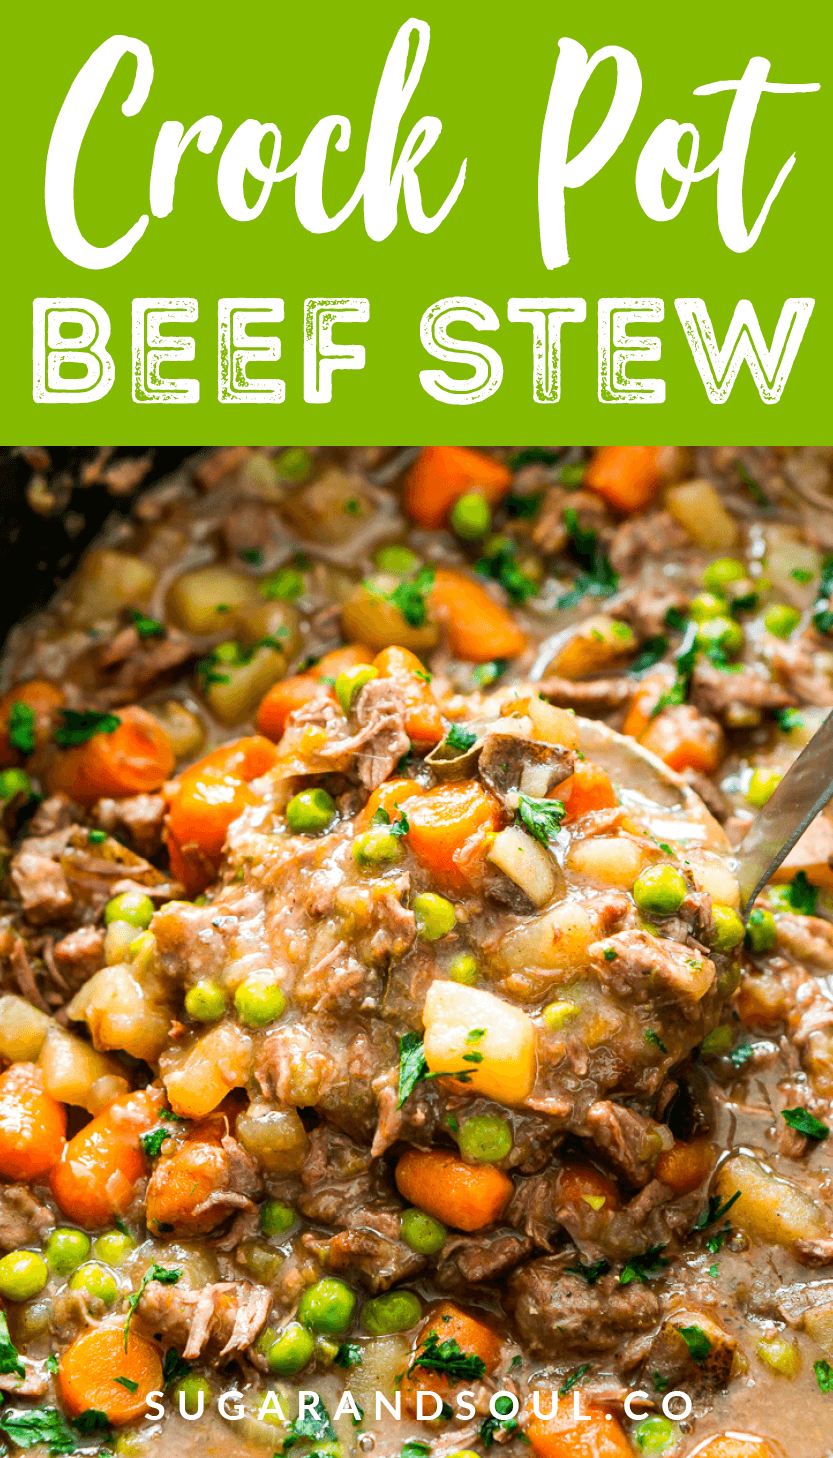 Crock Pot Beef Stew is filled with tender chunks of beef, carrots, peas, potatoes, celery, and savory spices, it's a wholesome family favorite that'll keep everyone warm as the weather gets cooler!